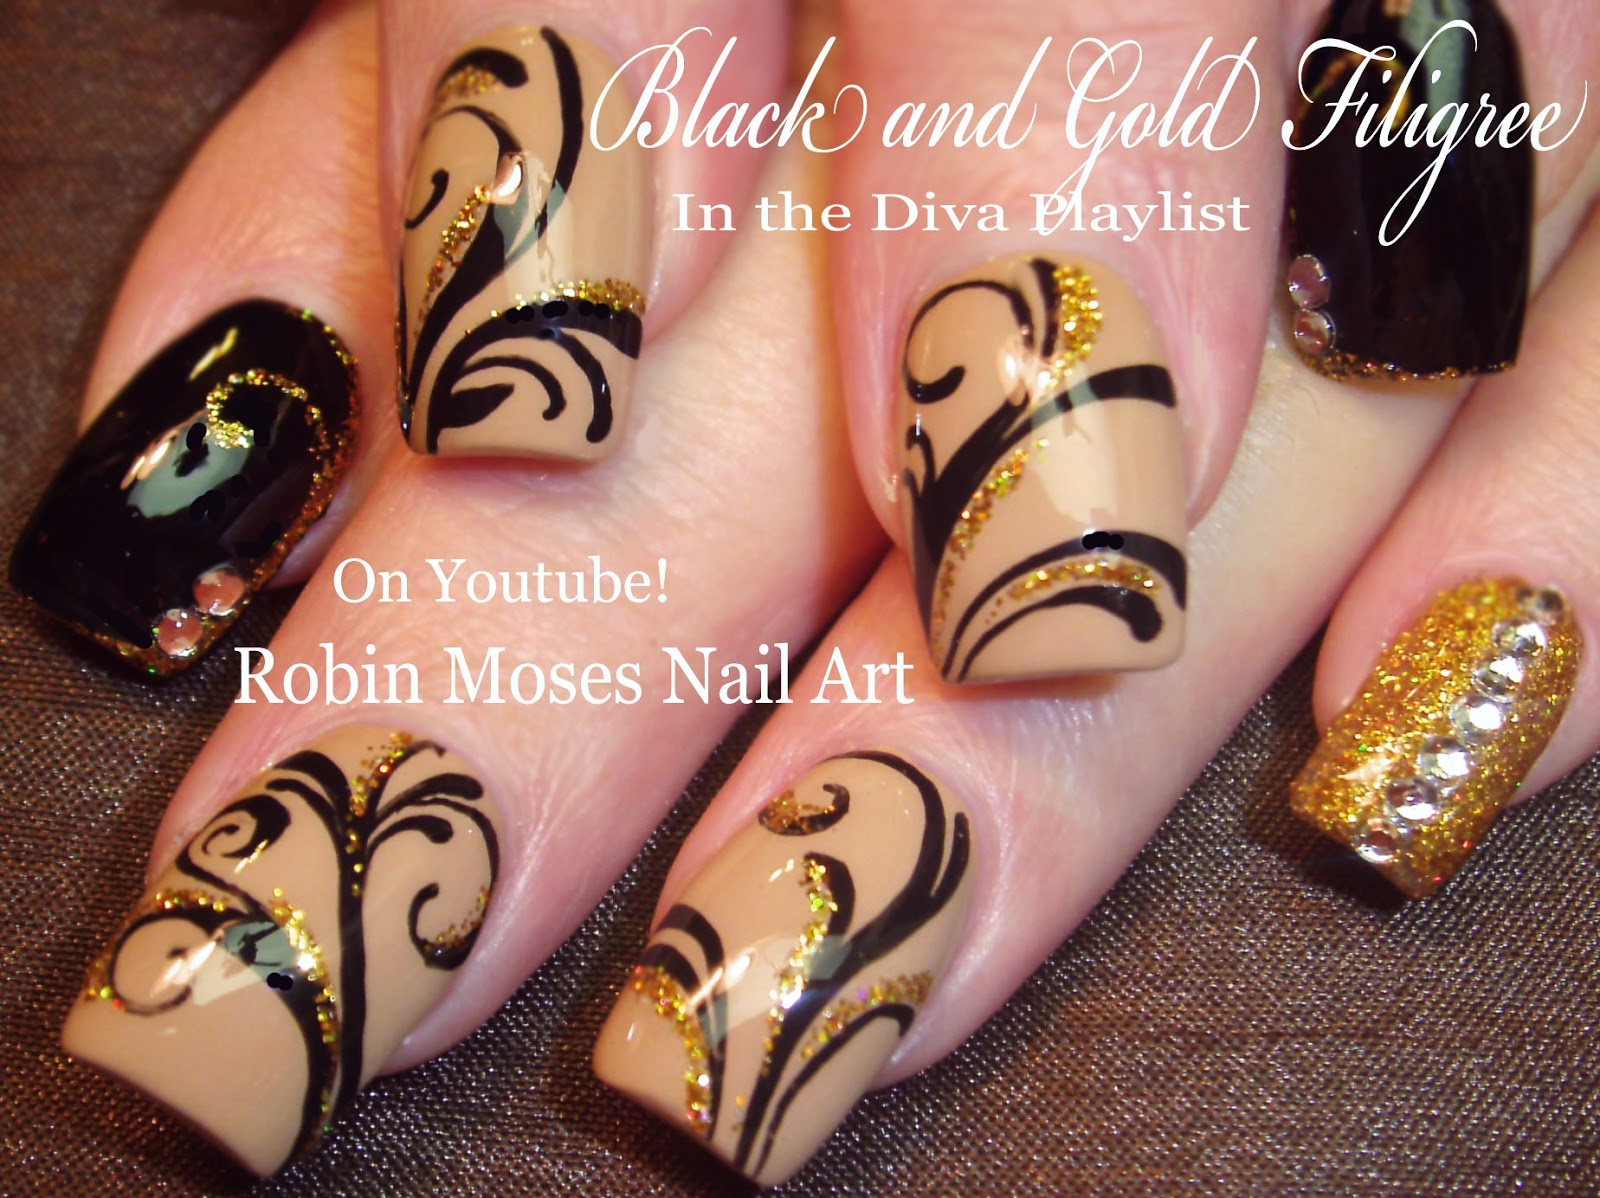 Robin moses nail art soft tan with black and gold winter diva soft tan with black and gold winter diva nails diva nails winter diva nail art winter nail art sexy and sophisticated tan nails black and prinsesfo Gallery